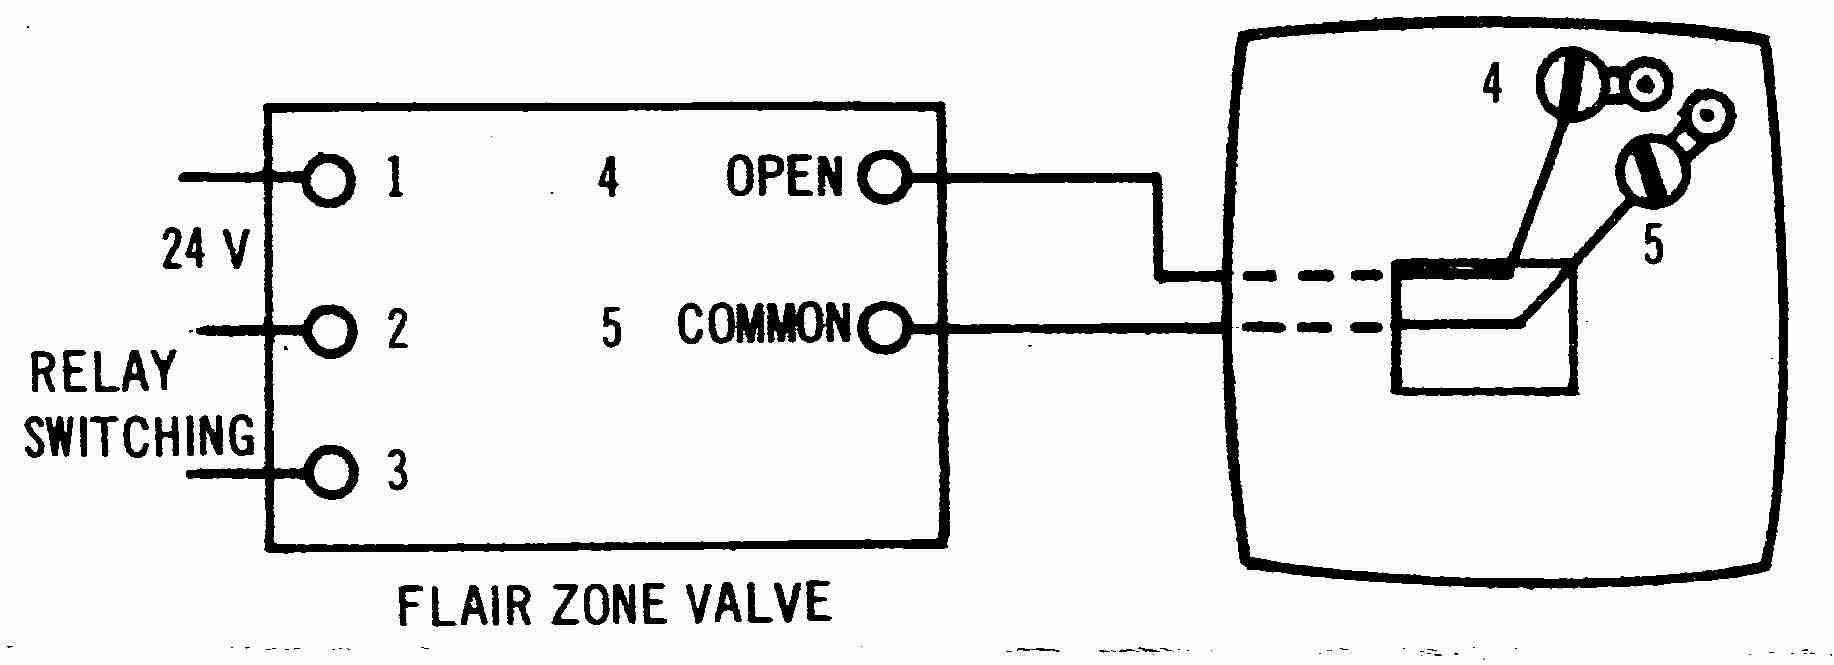 white rodgers 90 t40f3 wiring diagram   37 wiring diagram